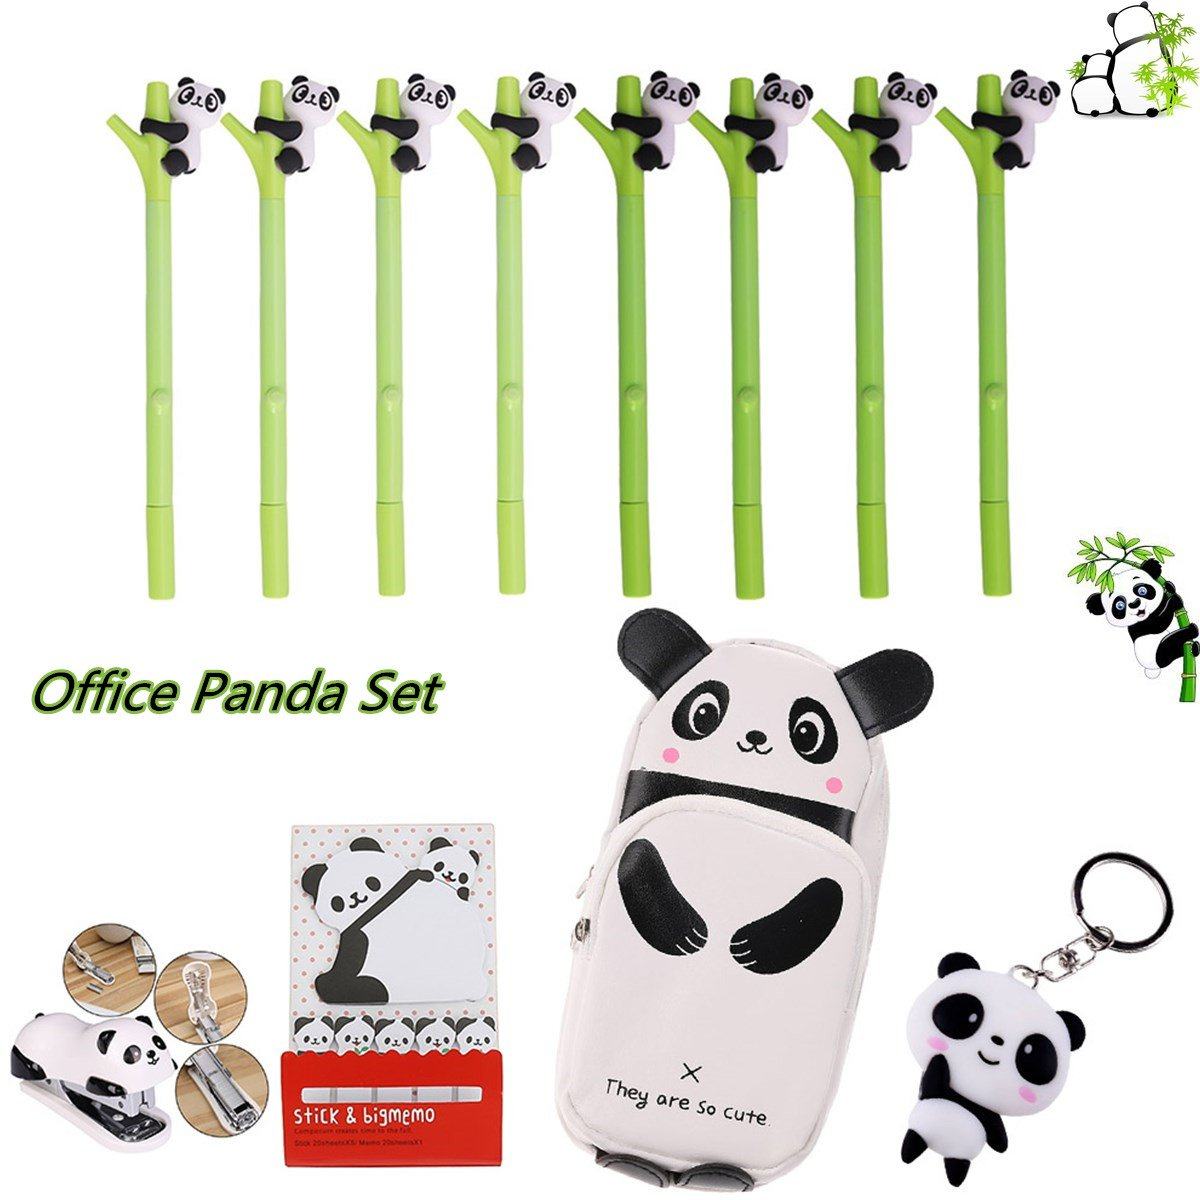 Wangyue Office Panda Set Panda Bamboo Gel Ink Pen Pack of 8 and One Set Mini Desktop Stapler One Stationery Bag Pen Holder One Cute Panda Keychain One Set Memo Sticky Notes for School Kids Girls Gifts